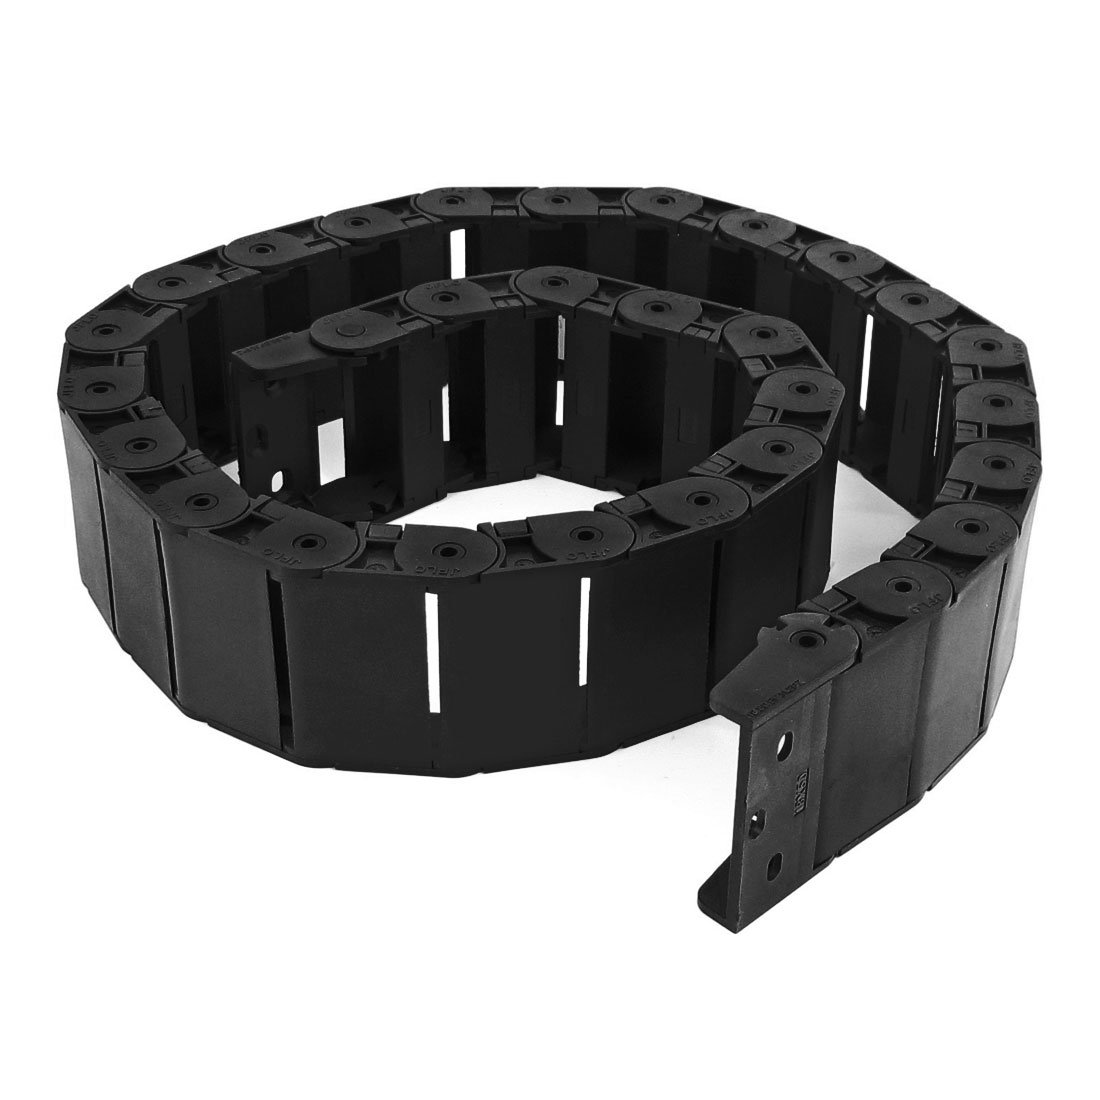 40.55'' Black Cable Wire Carrier Drag Chain Nested 18mm x 50mm